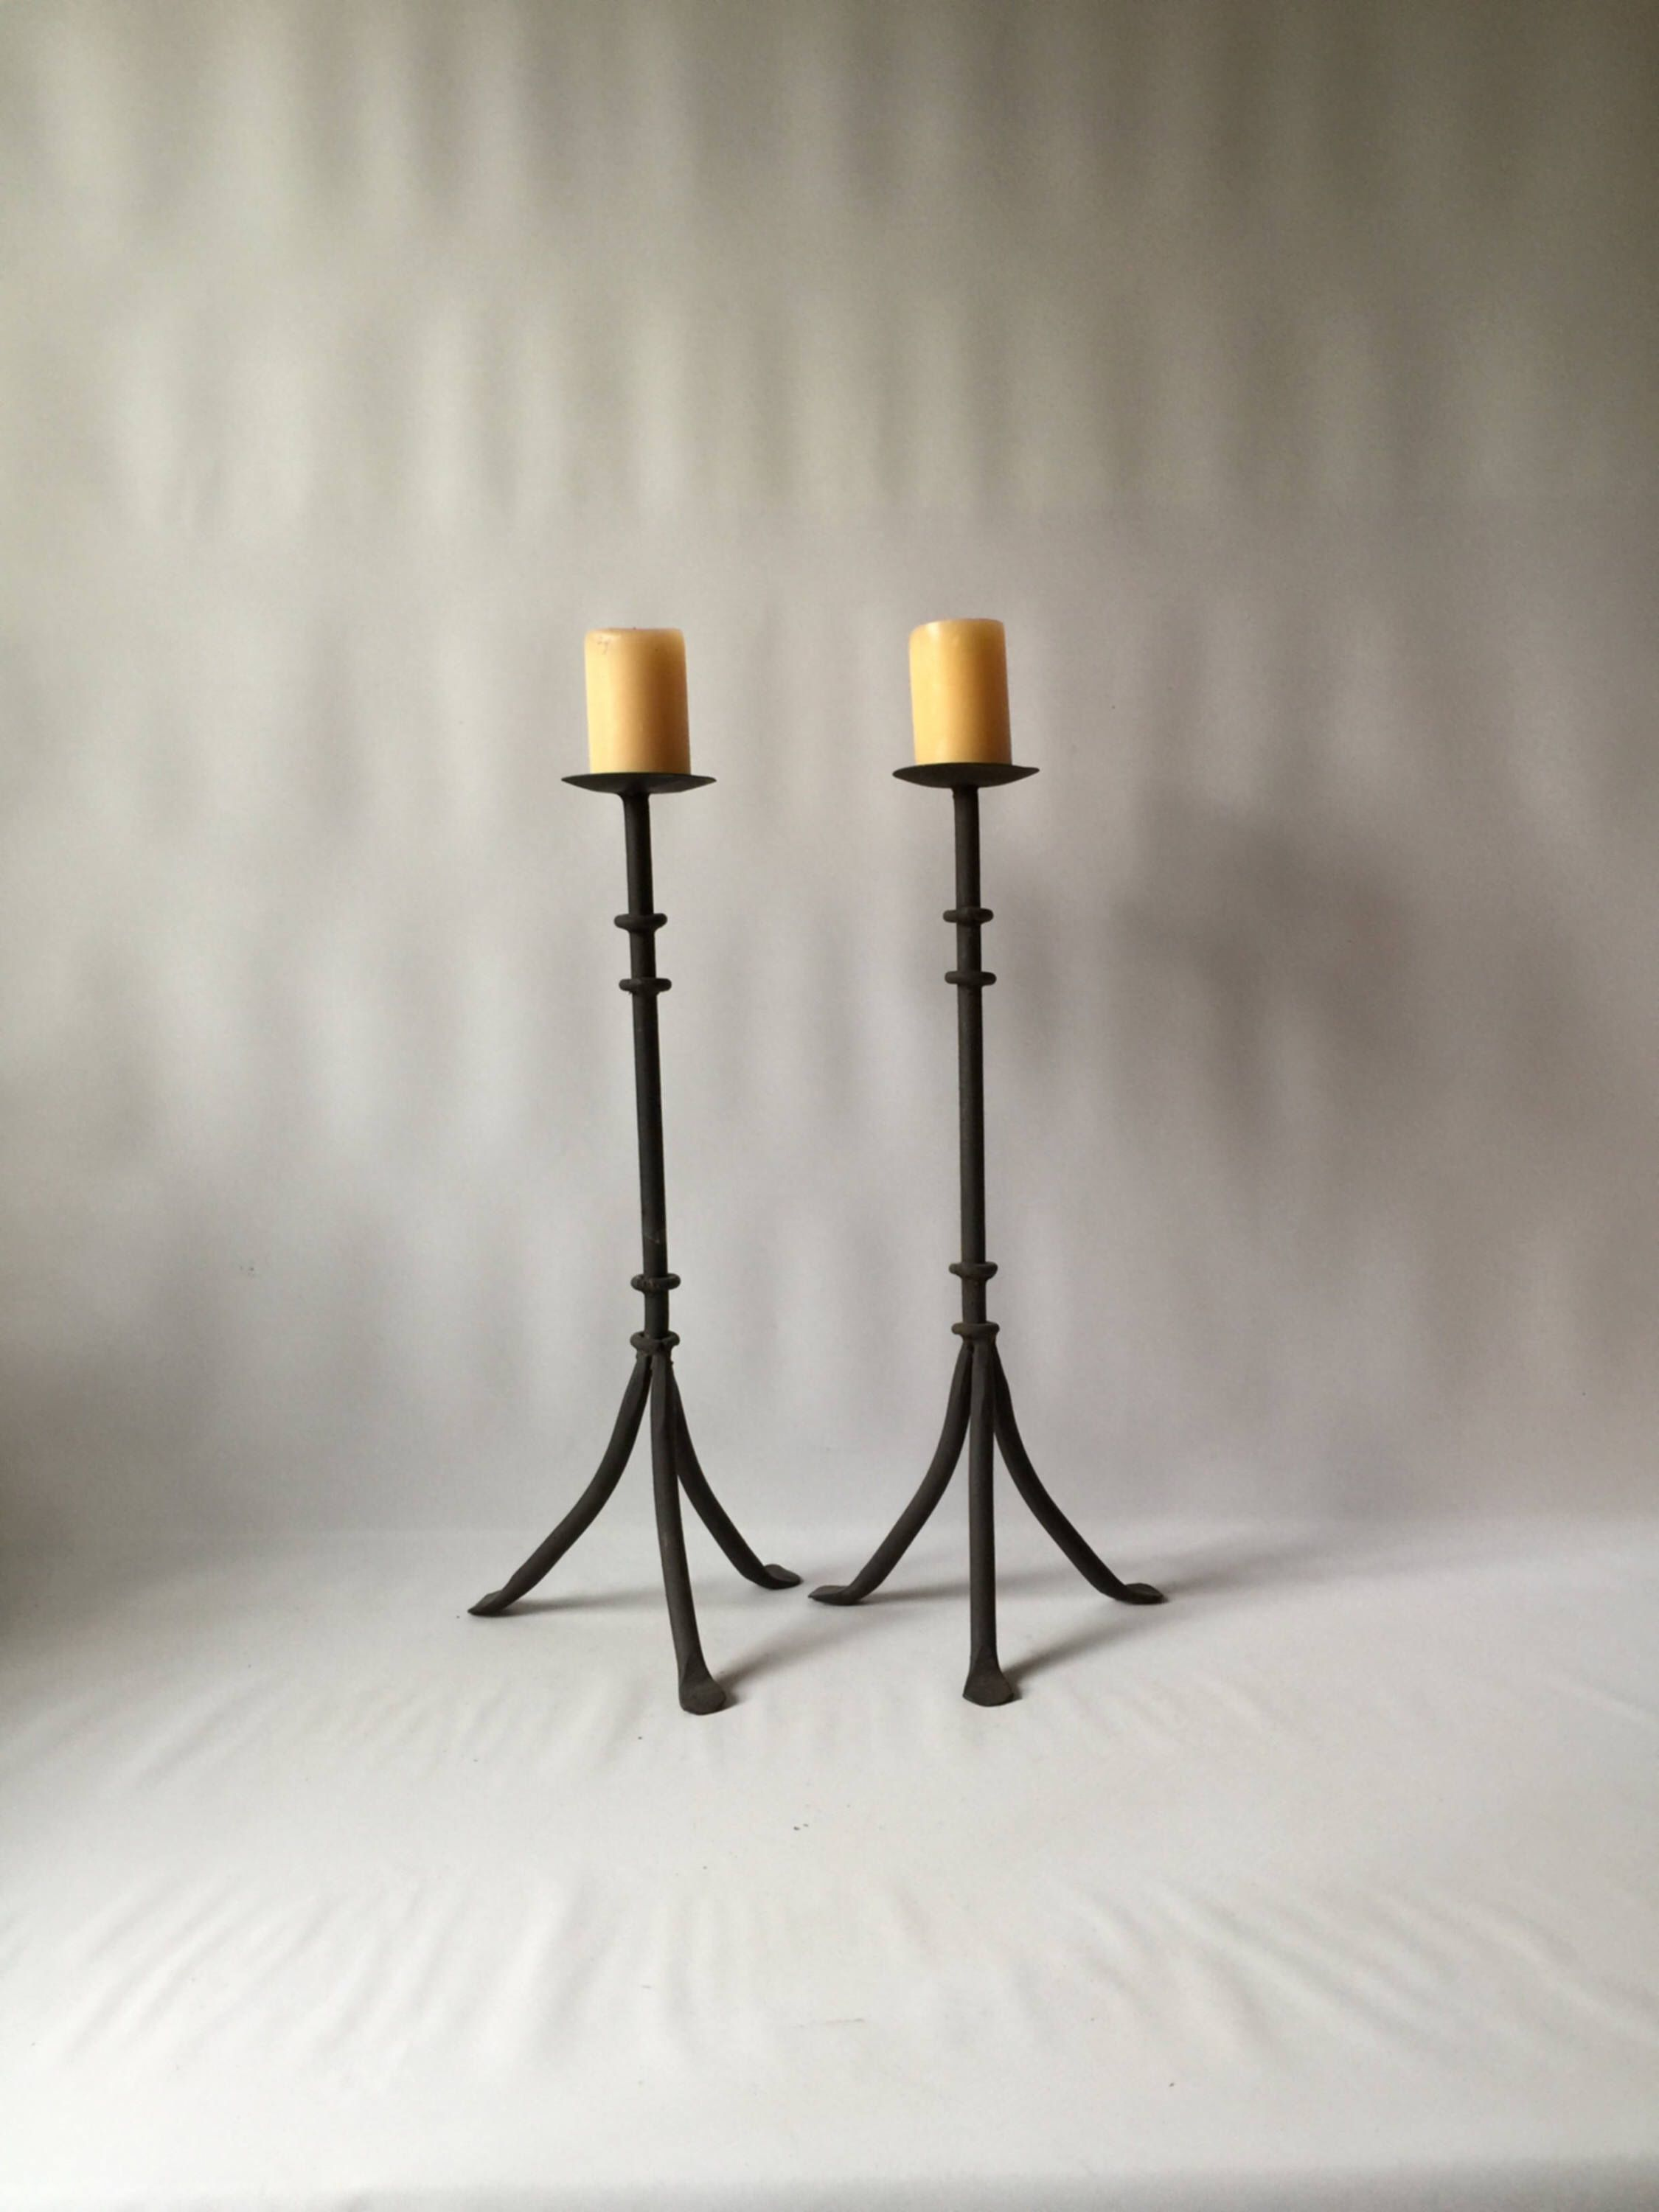 Candlesticks vintage rod iron tall rustic candle holders rustic ...